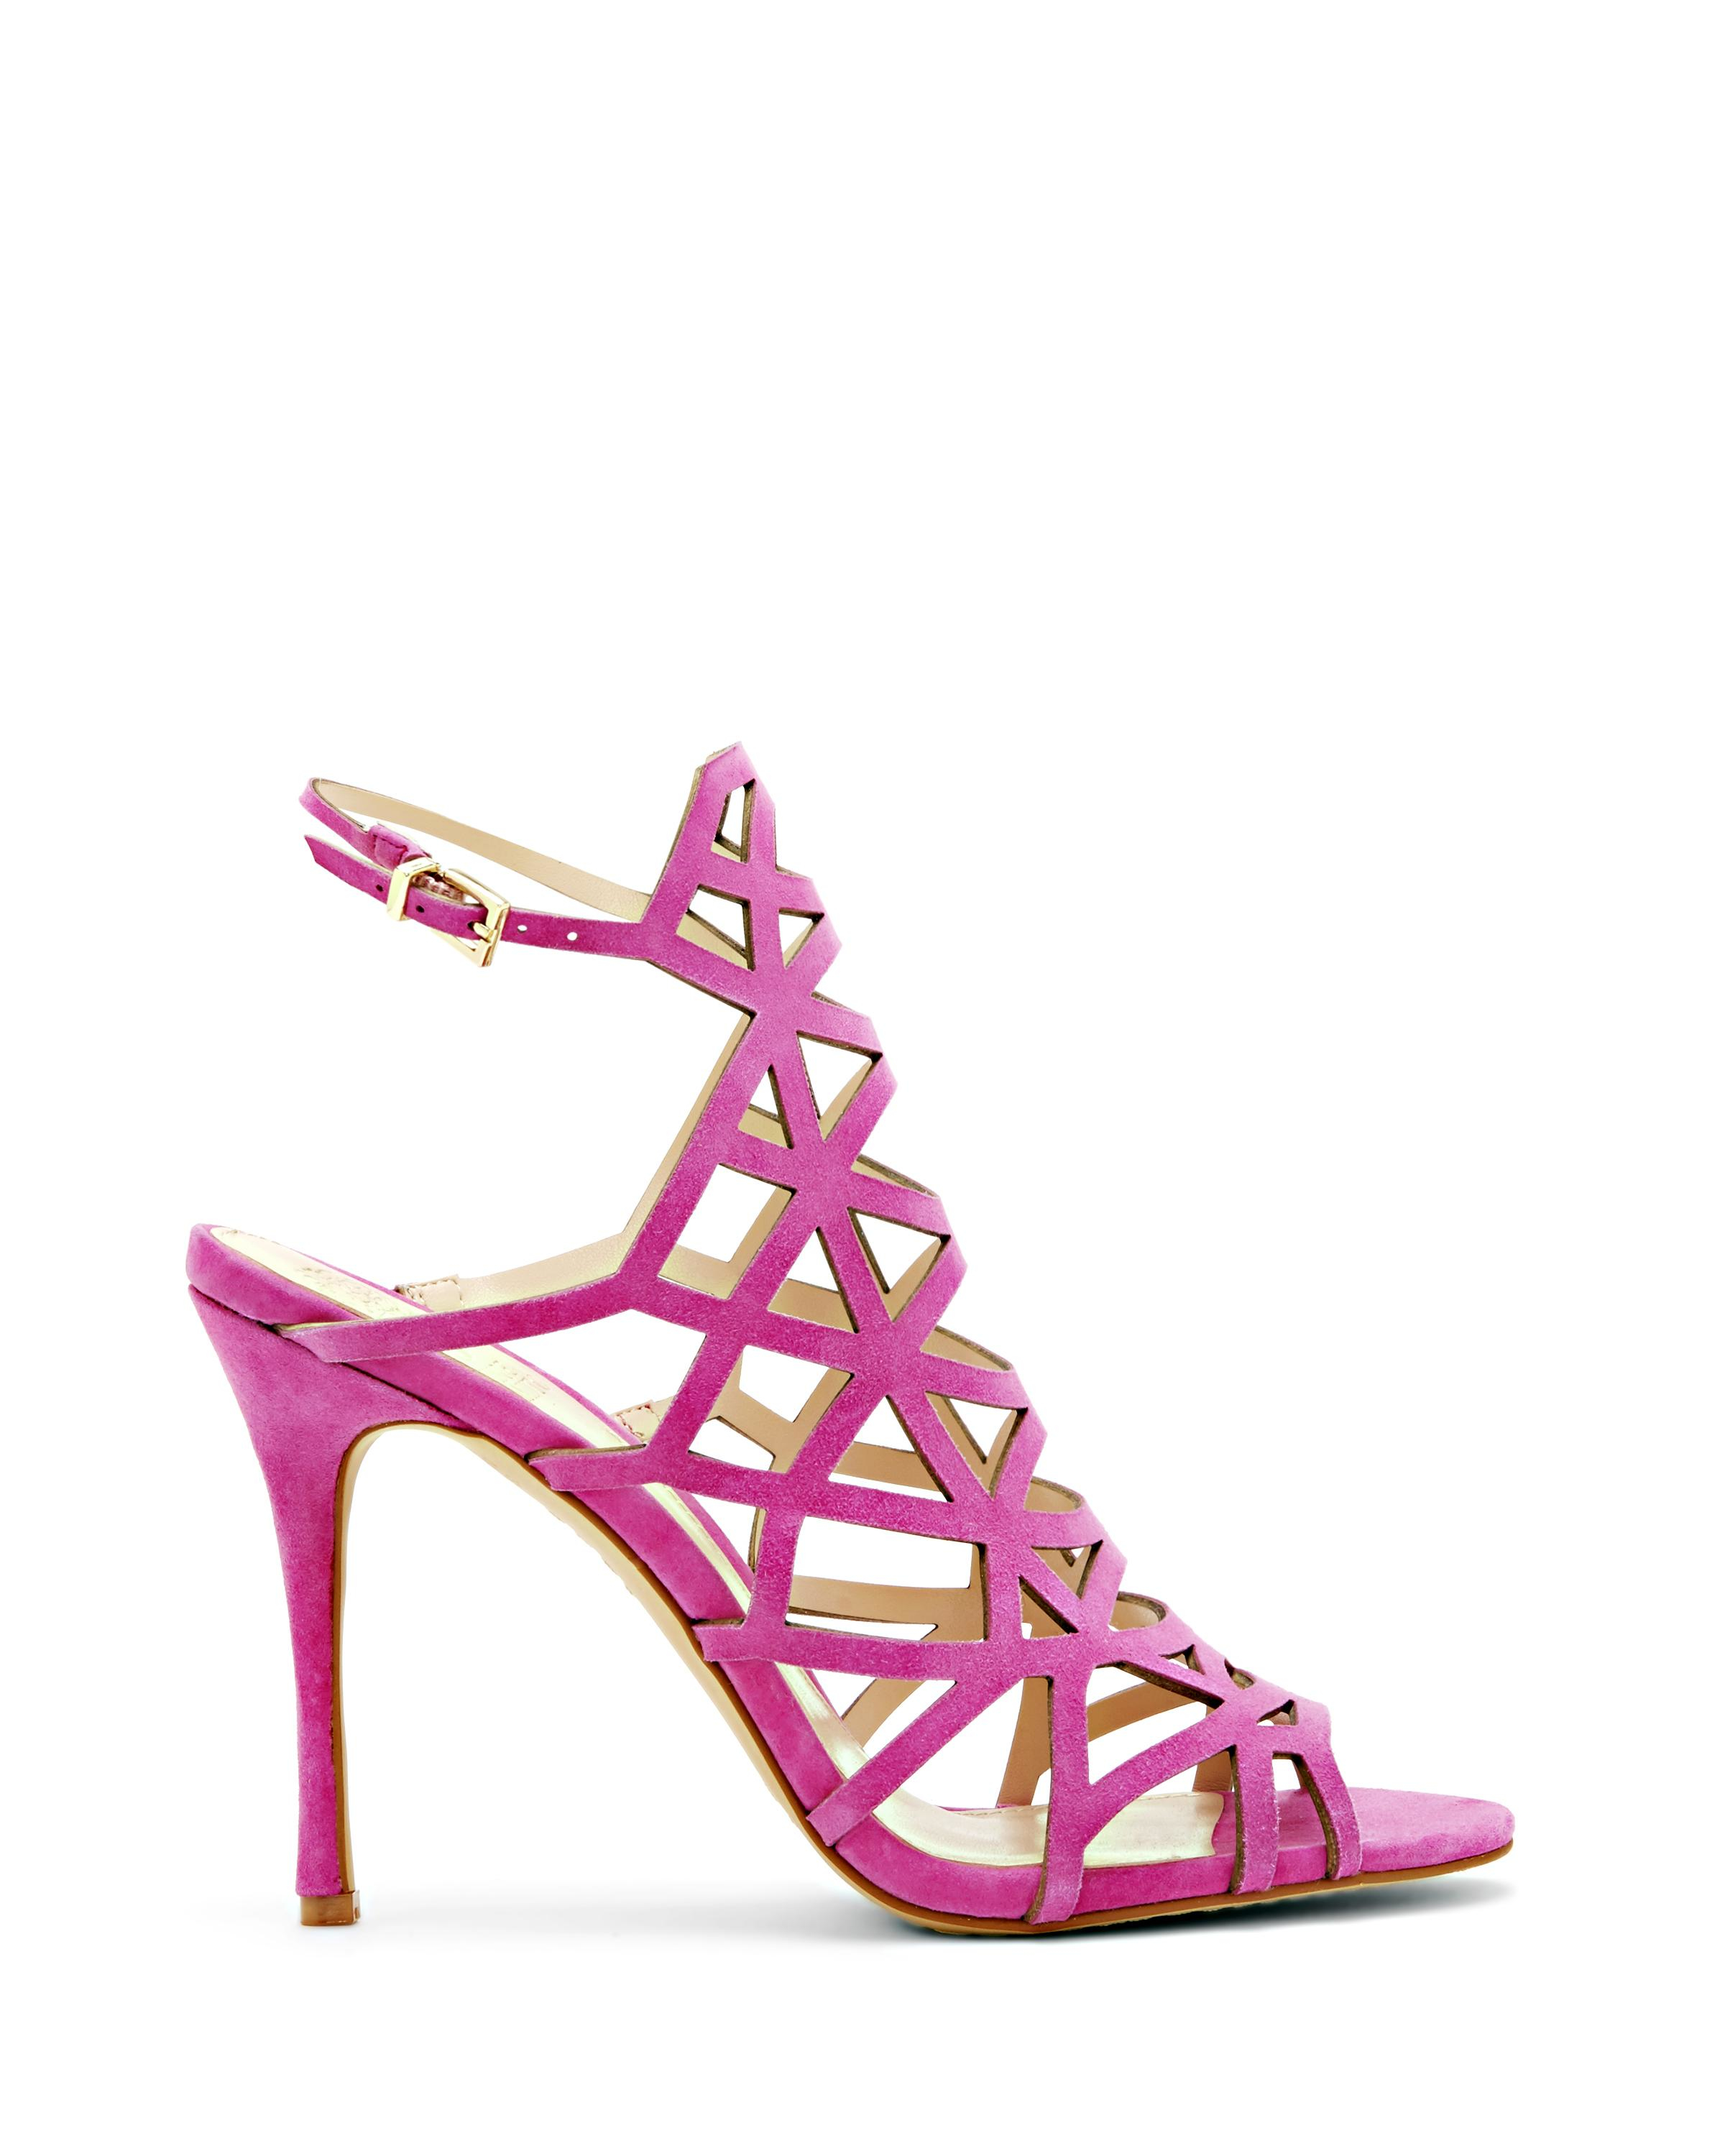 Vince Camuto Kristana Cutout High Heel Sandal In Pink Lyst